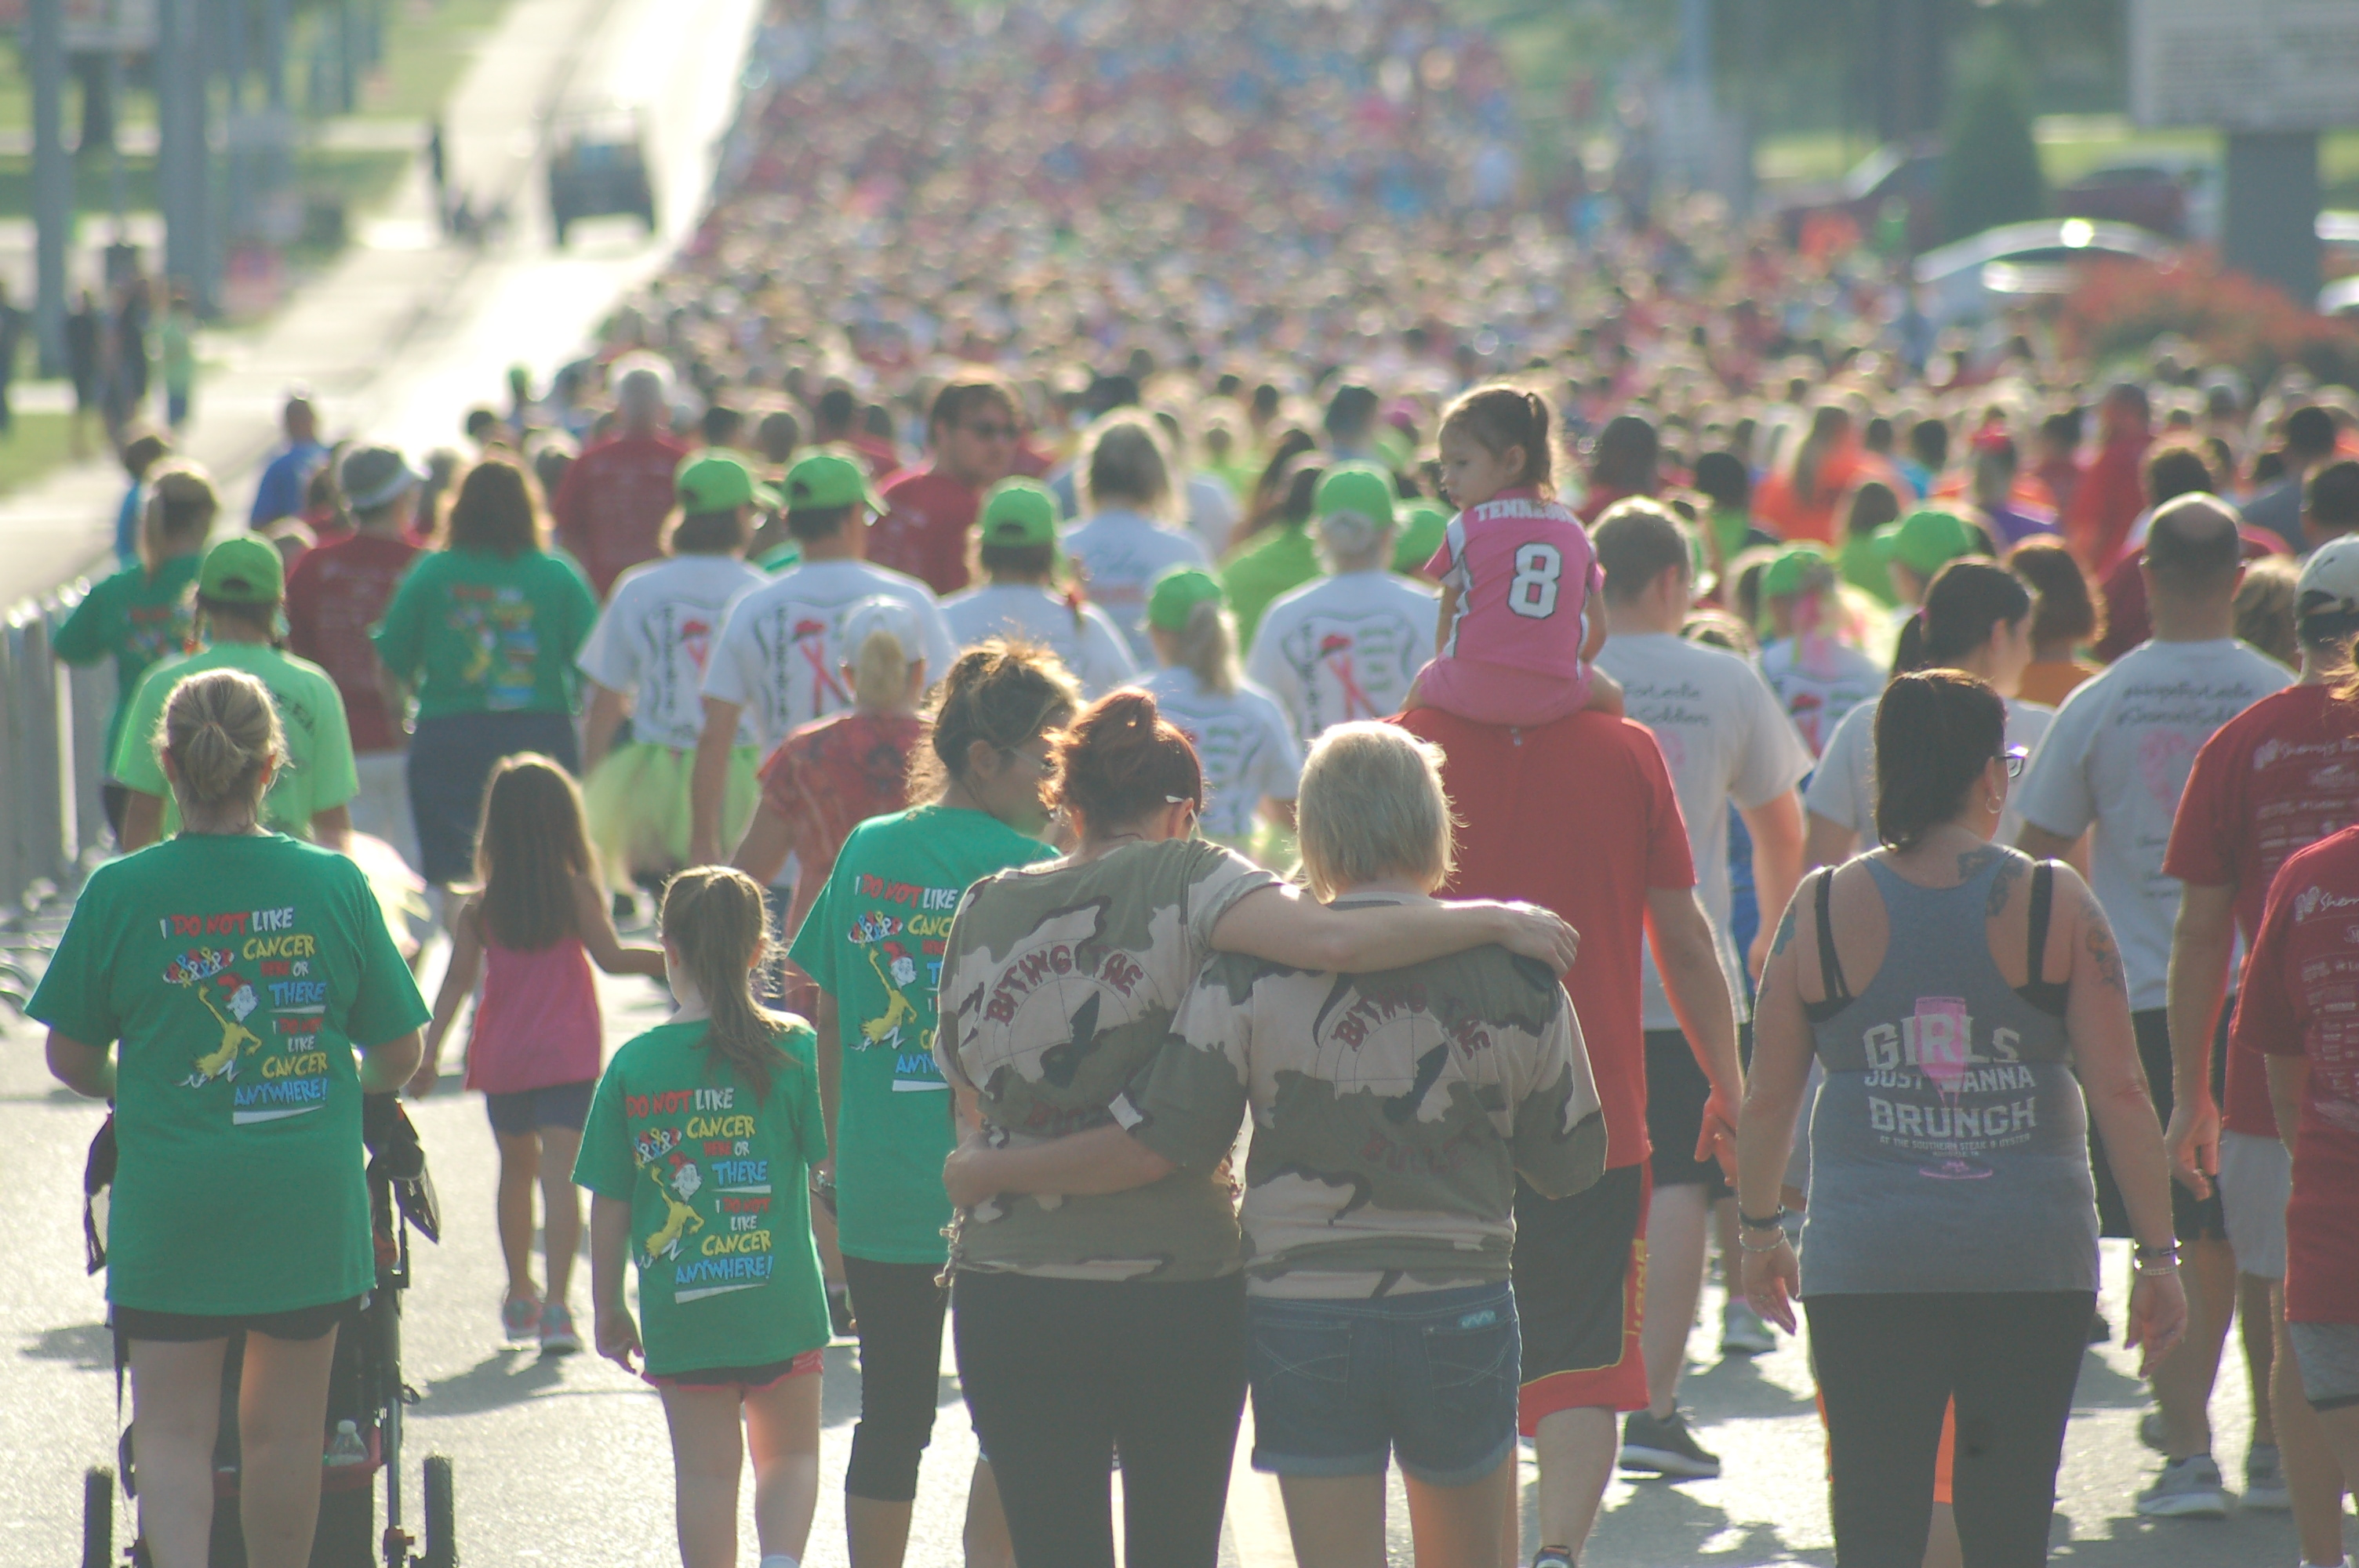 13th Annual Sherry's Run - Overwhelming Community Support